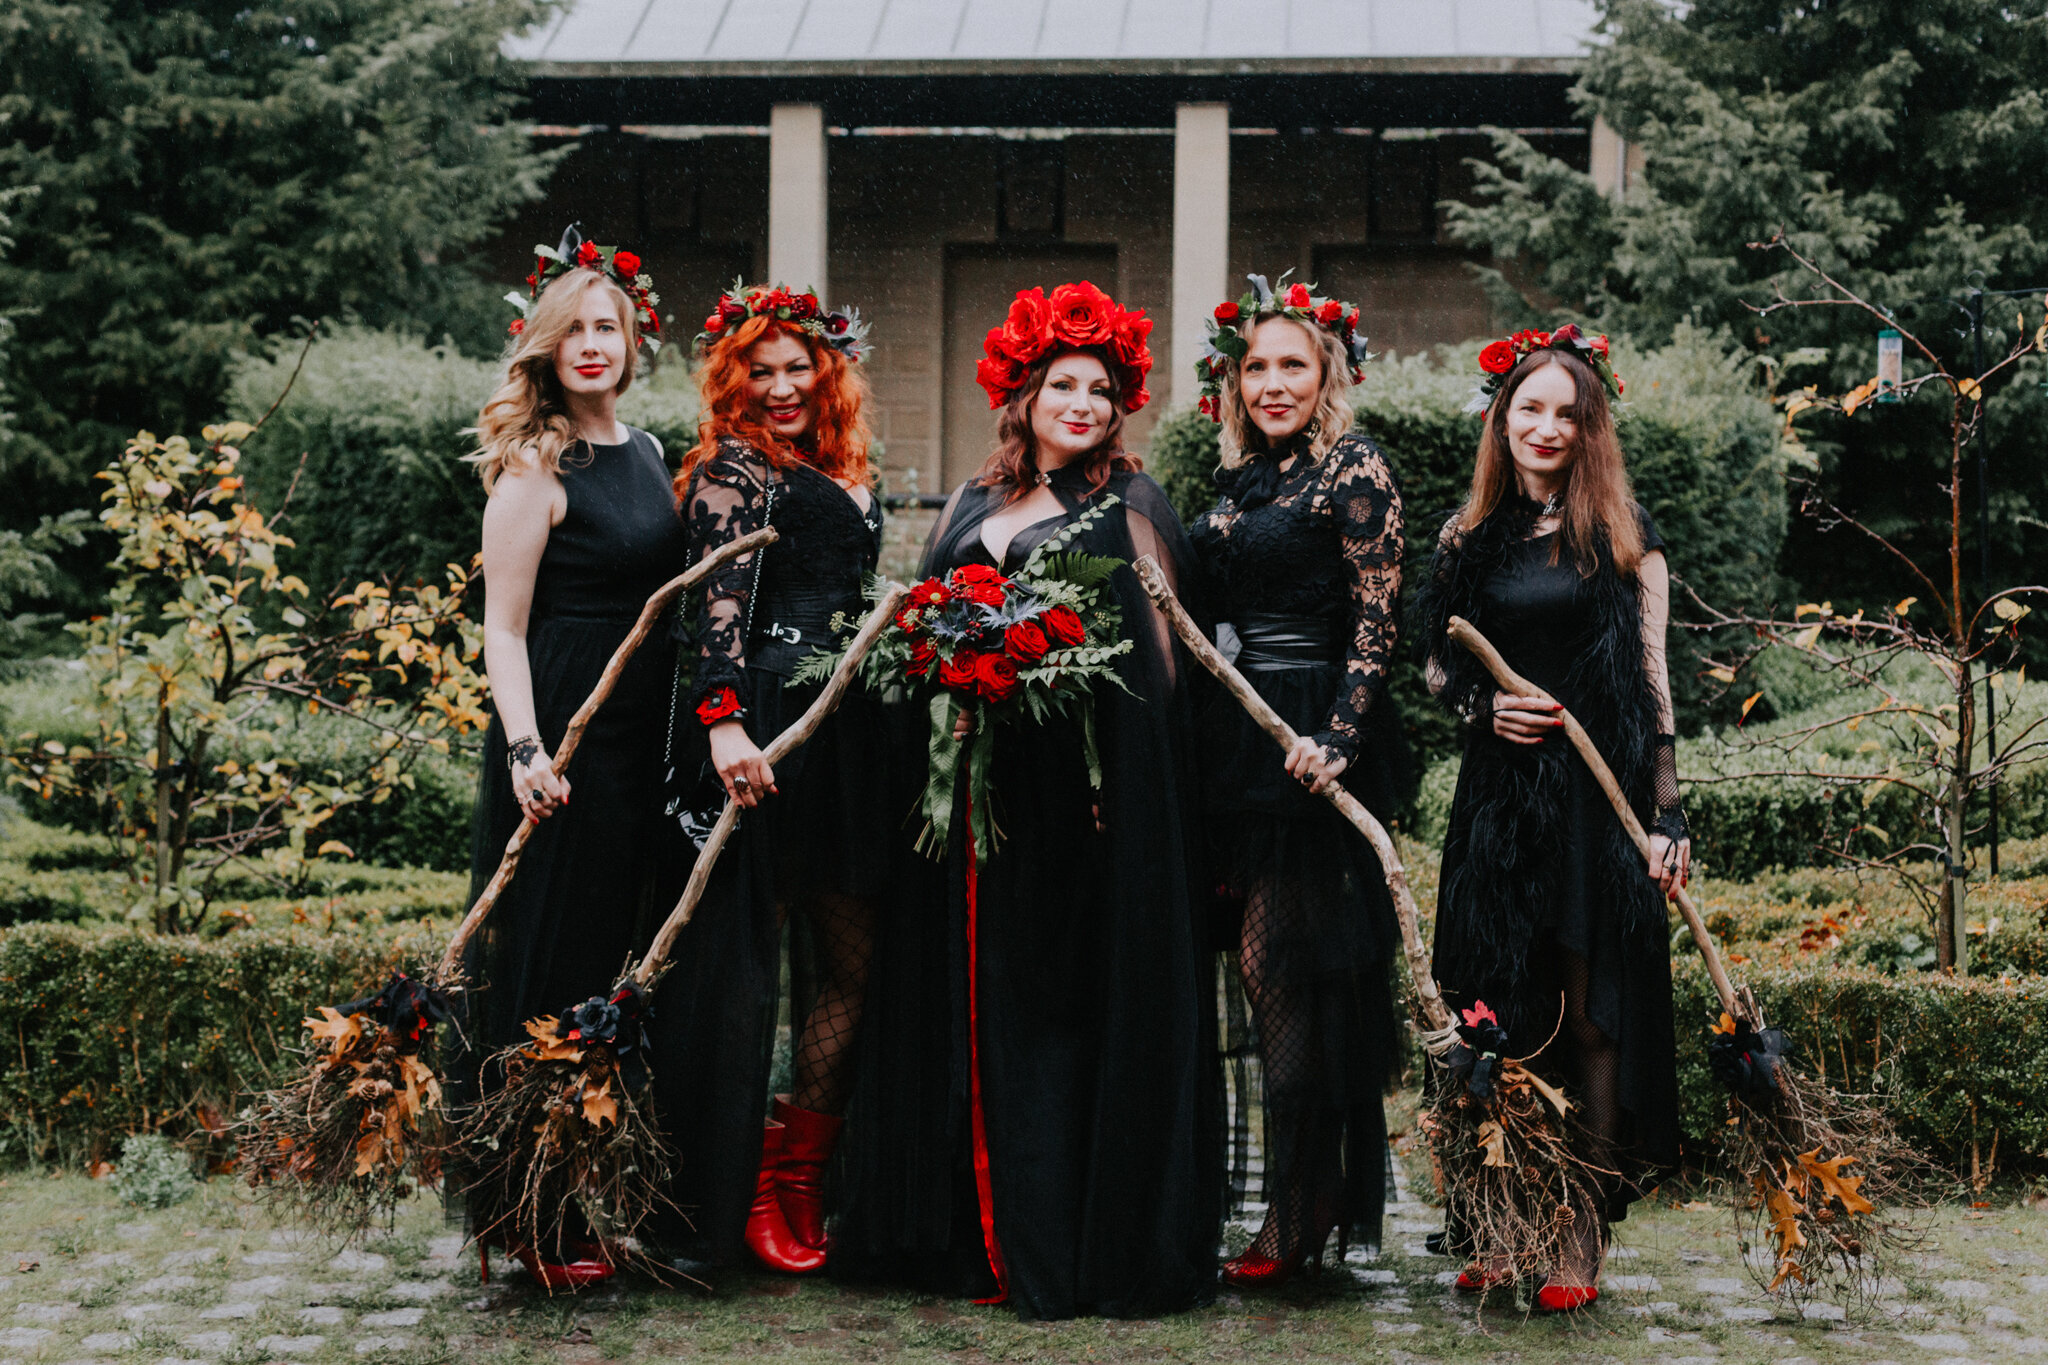 The alternative bridal witches party shot